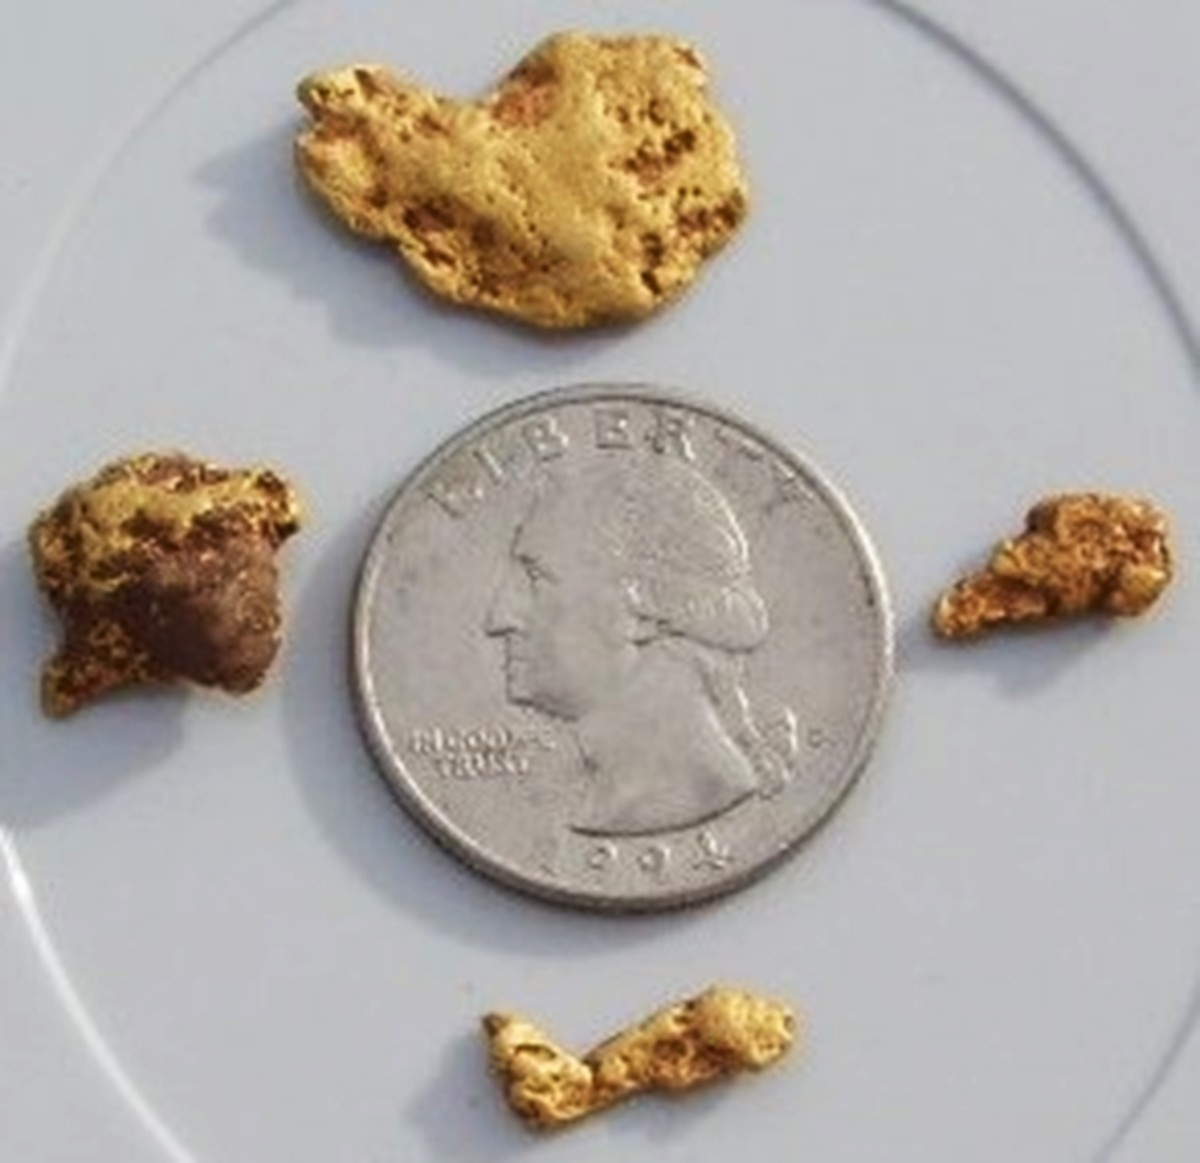 Medium to small gold nuggets